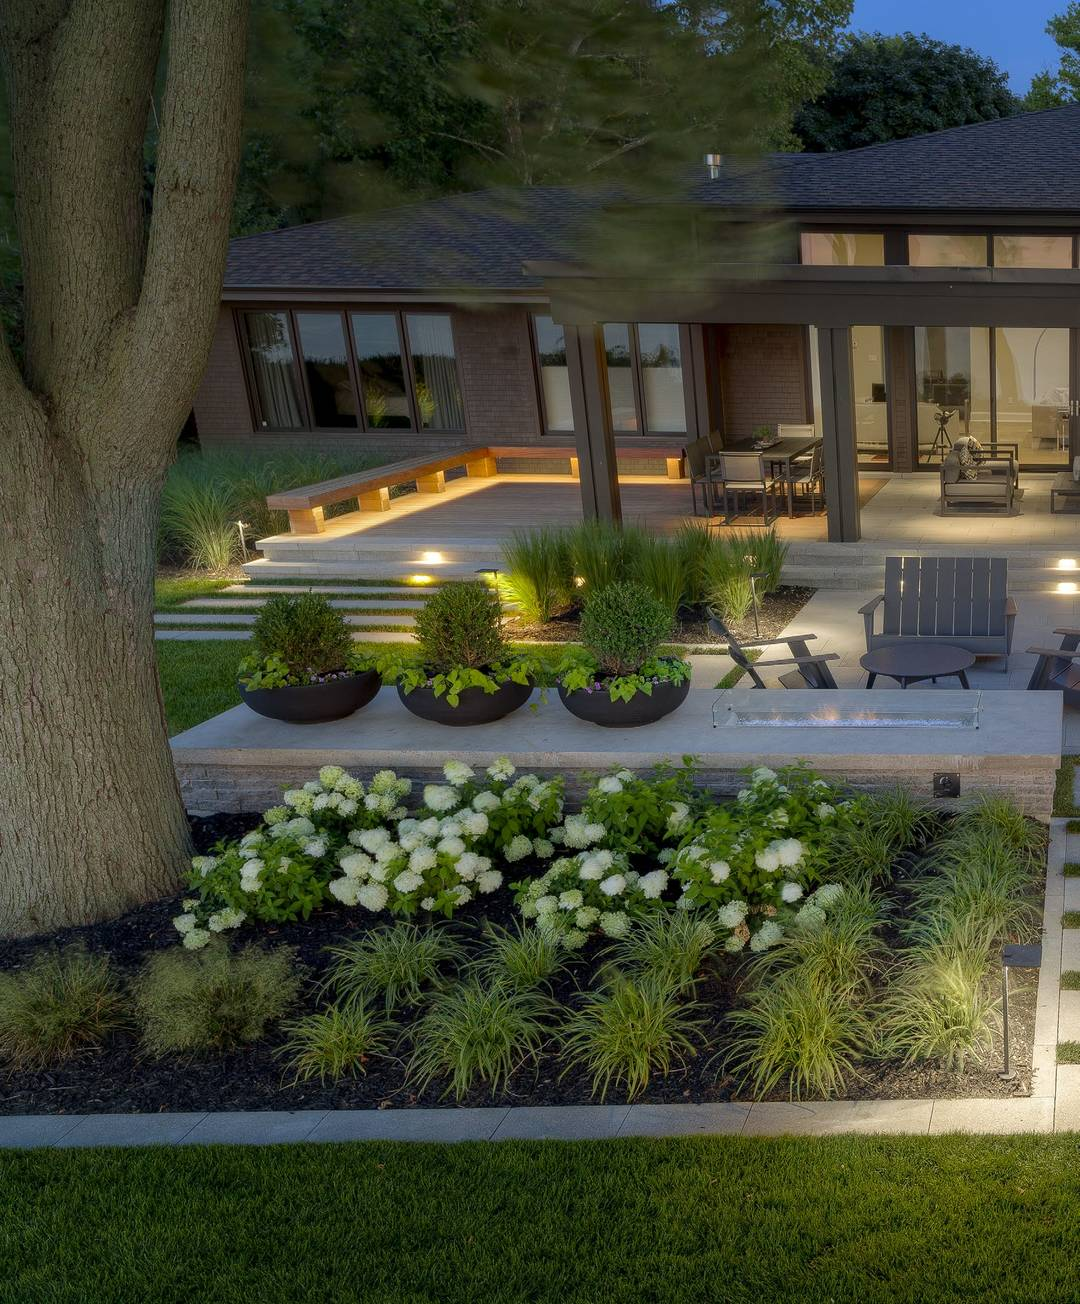 Page 38 of CREATING THE WOW EFFECT IN A LOW-KEY GARDEN DESIGN